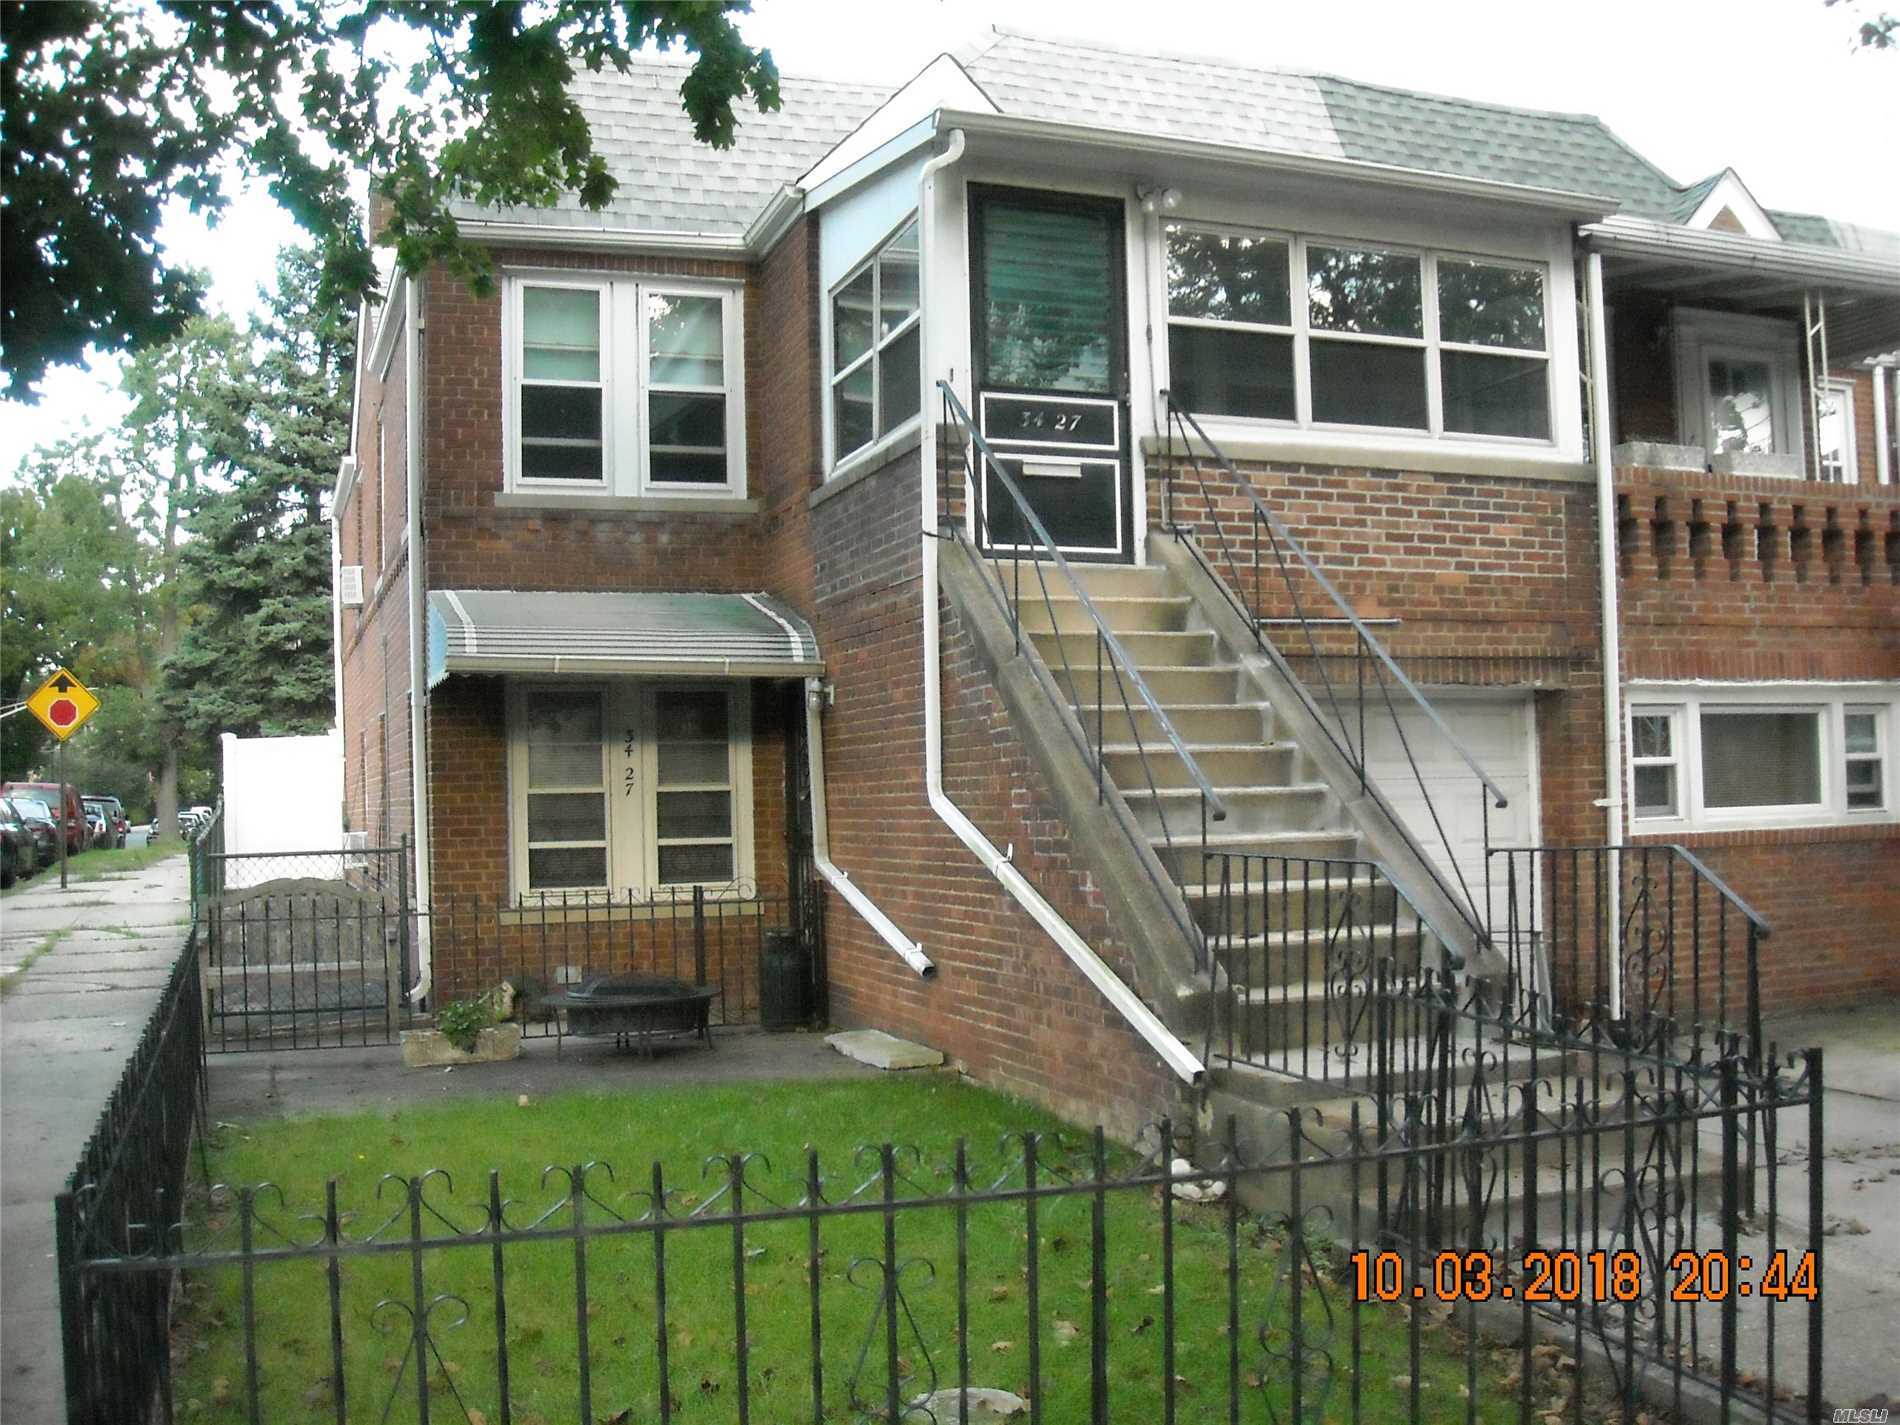 New Roof, New Rear Fence. Great Clean Condition, Legal 2 Family, Second Floor Vacant